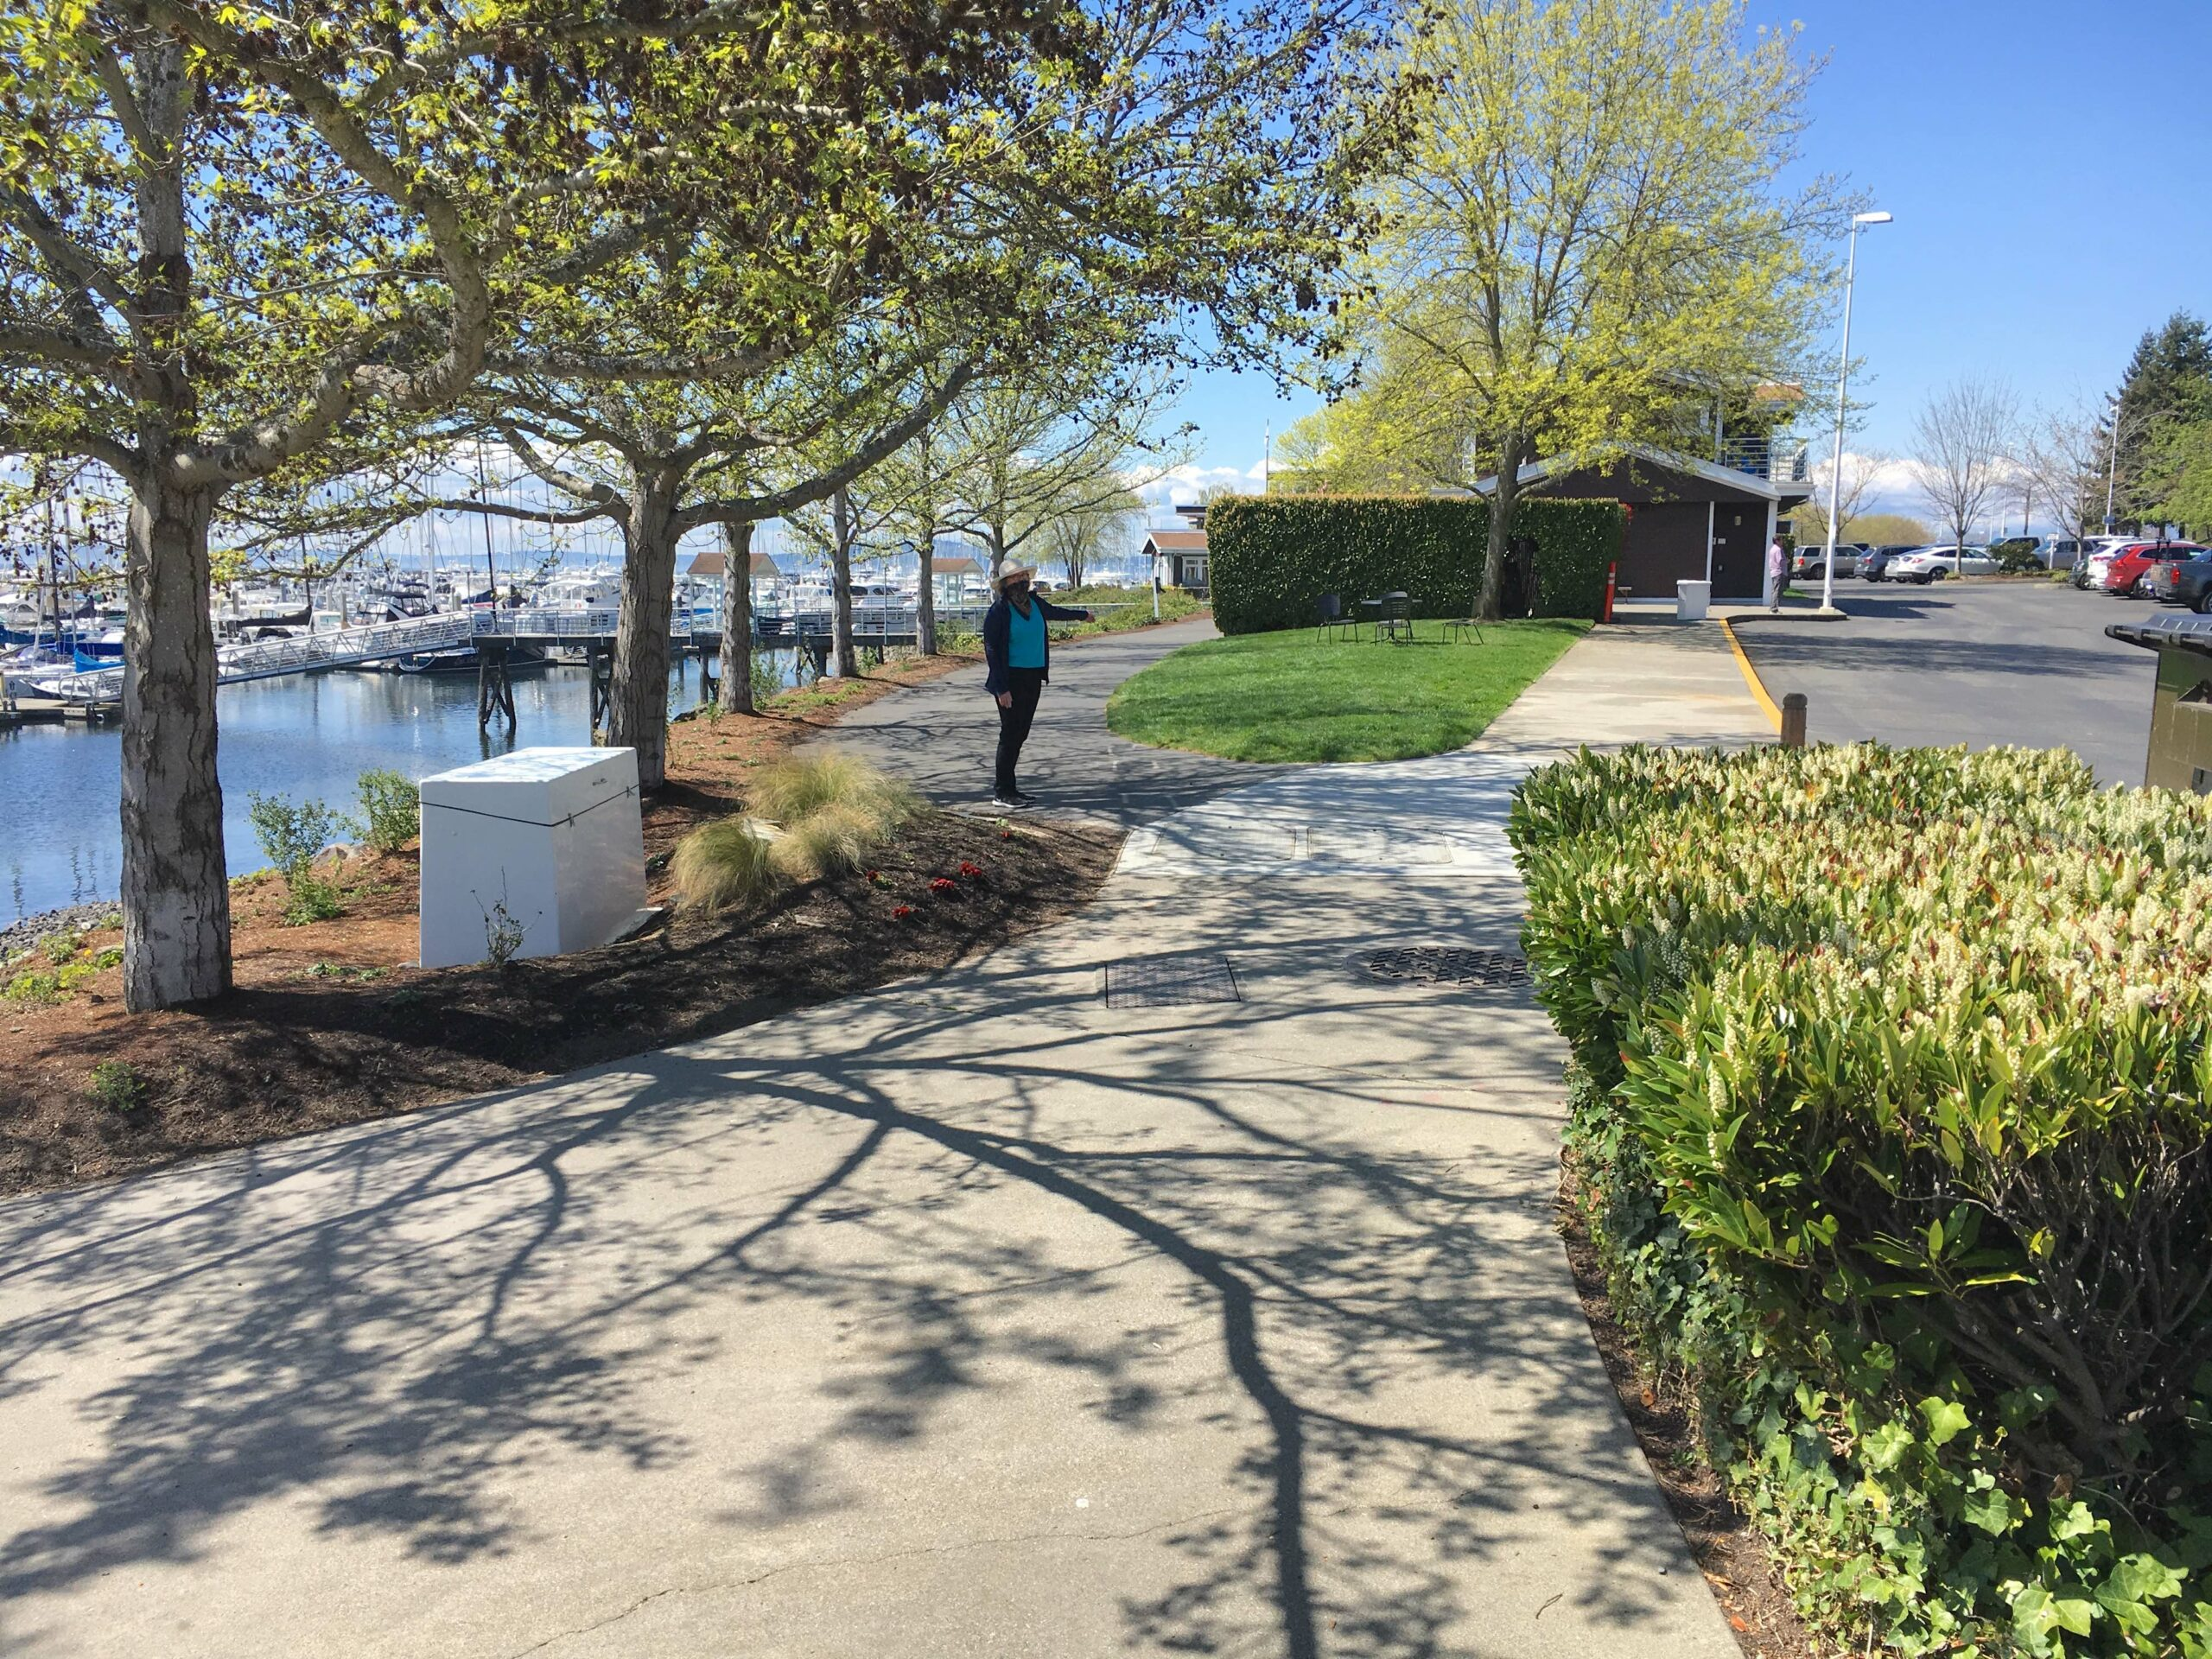 Take Lower Path to Marina, Seating, and Cafe